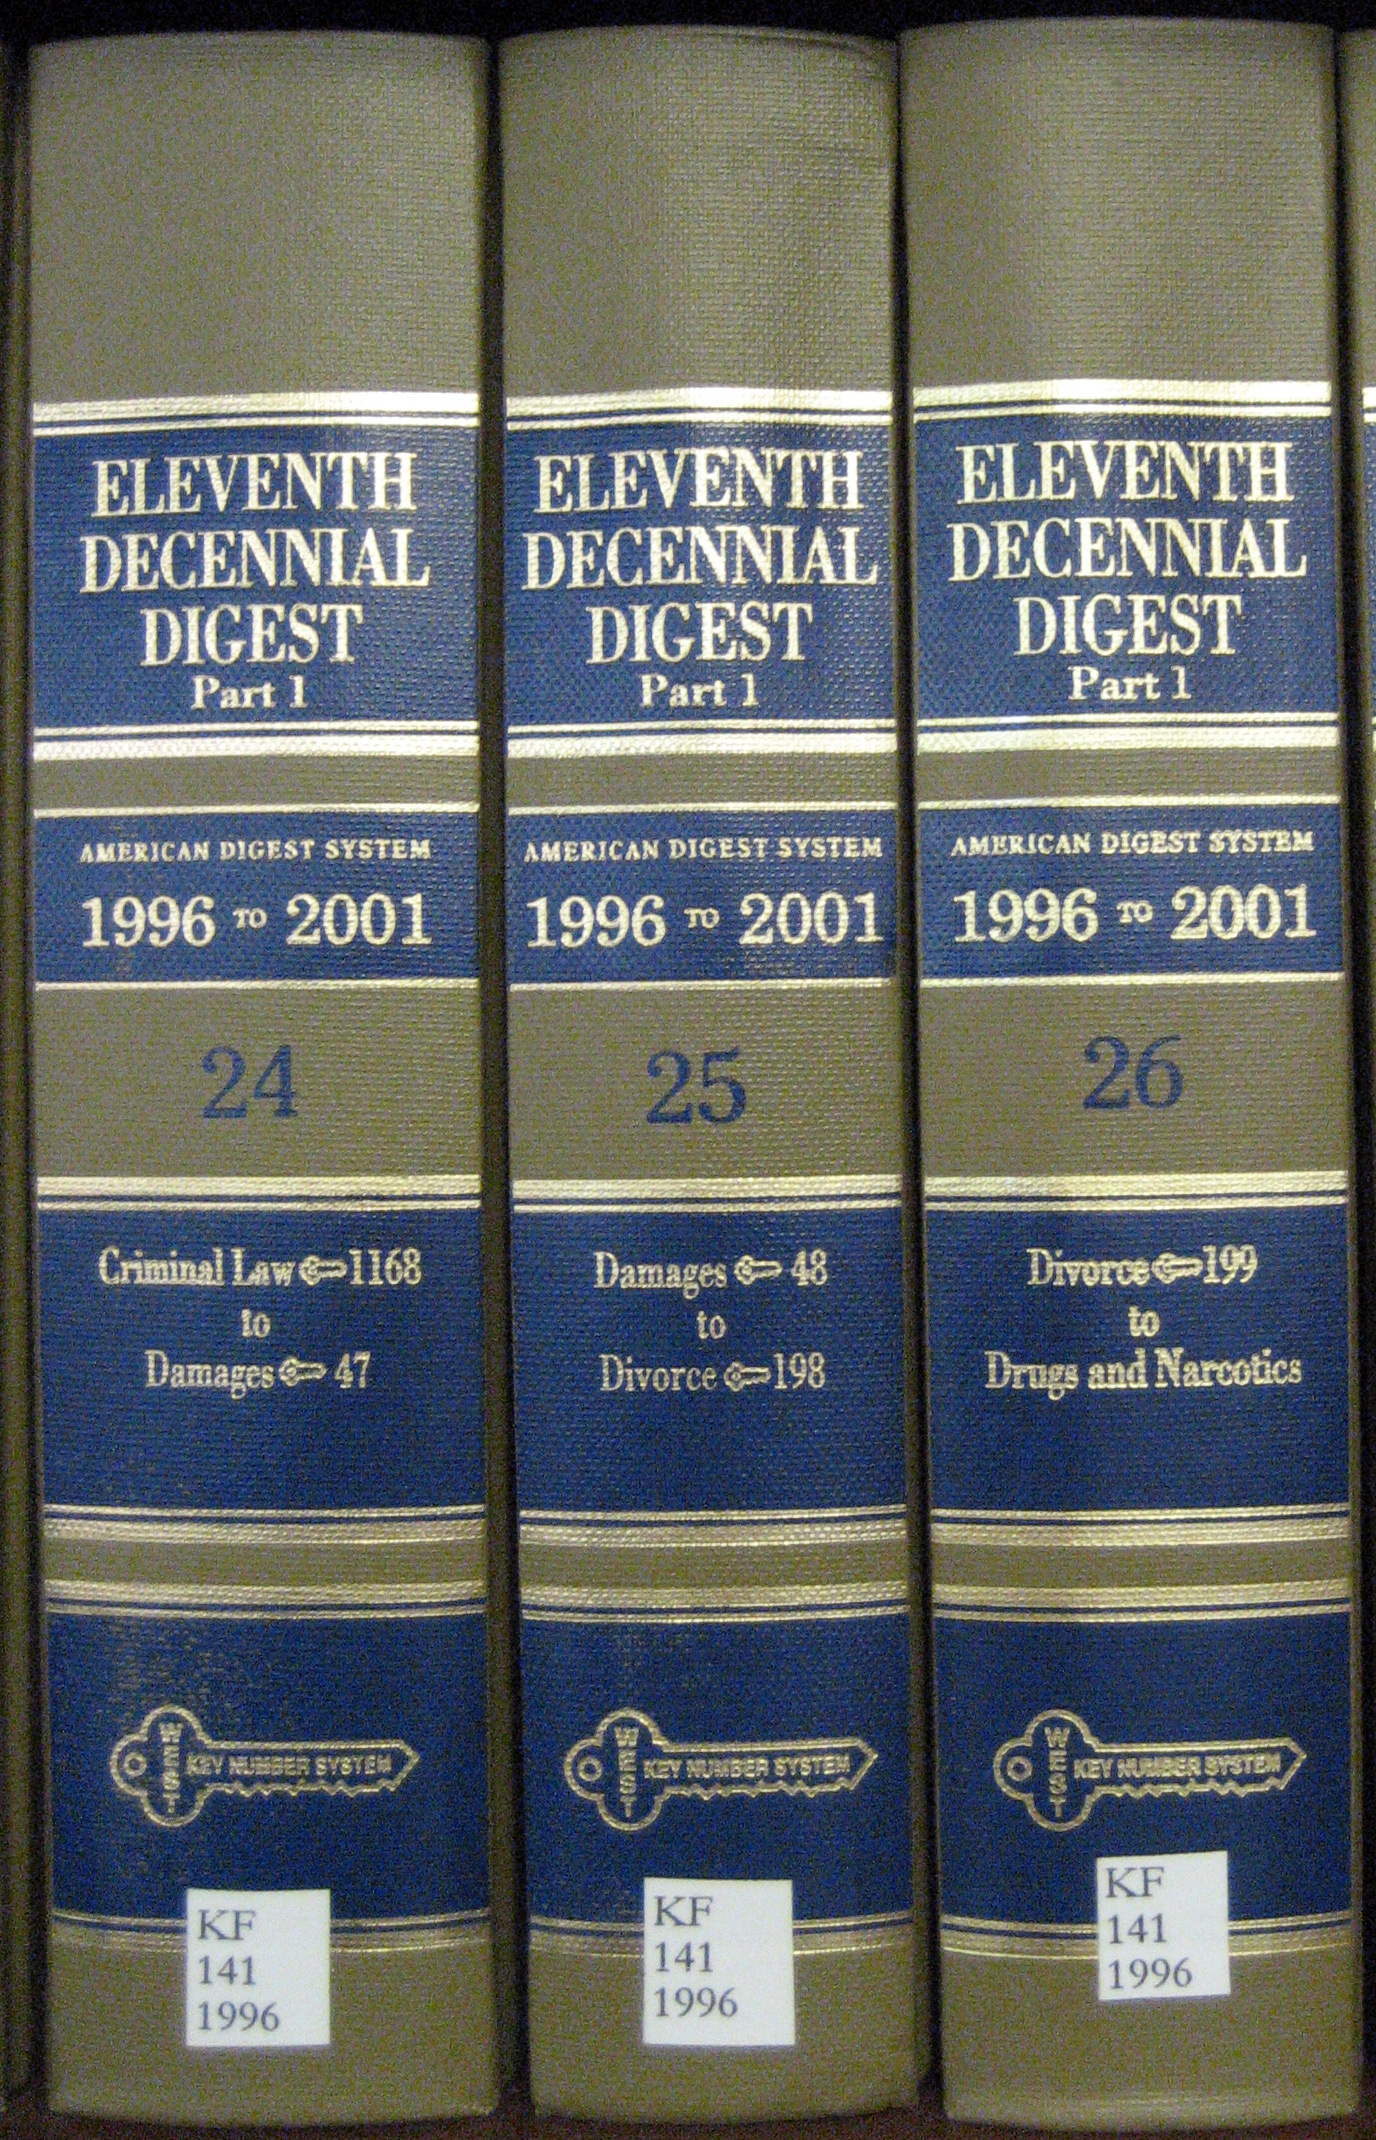 Eleventh Decennial Digest books